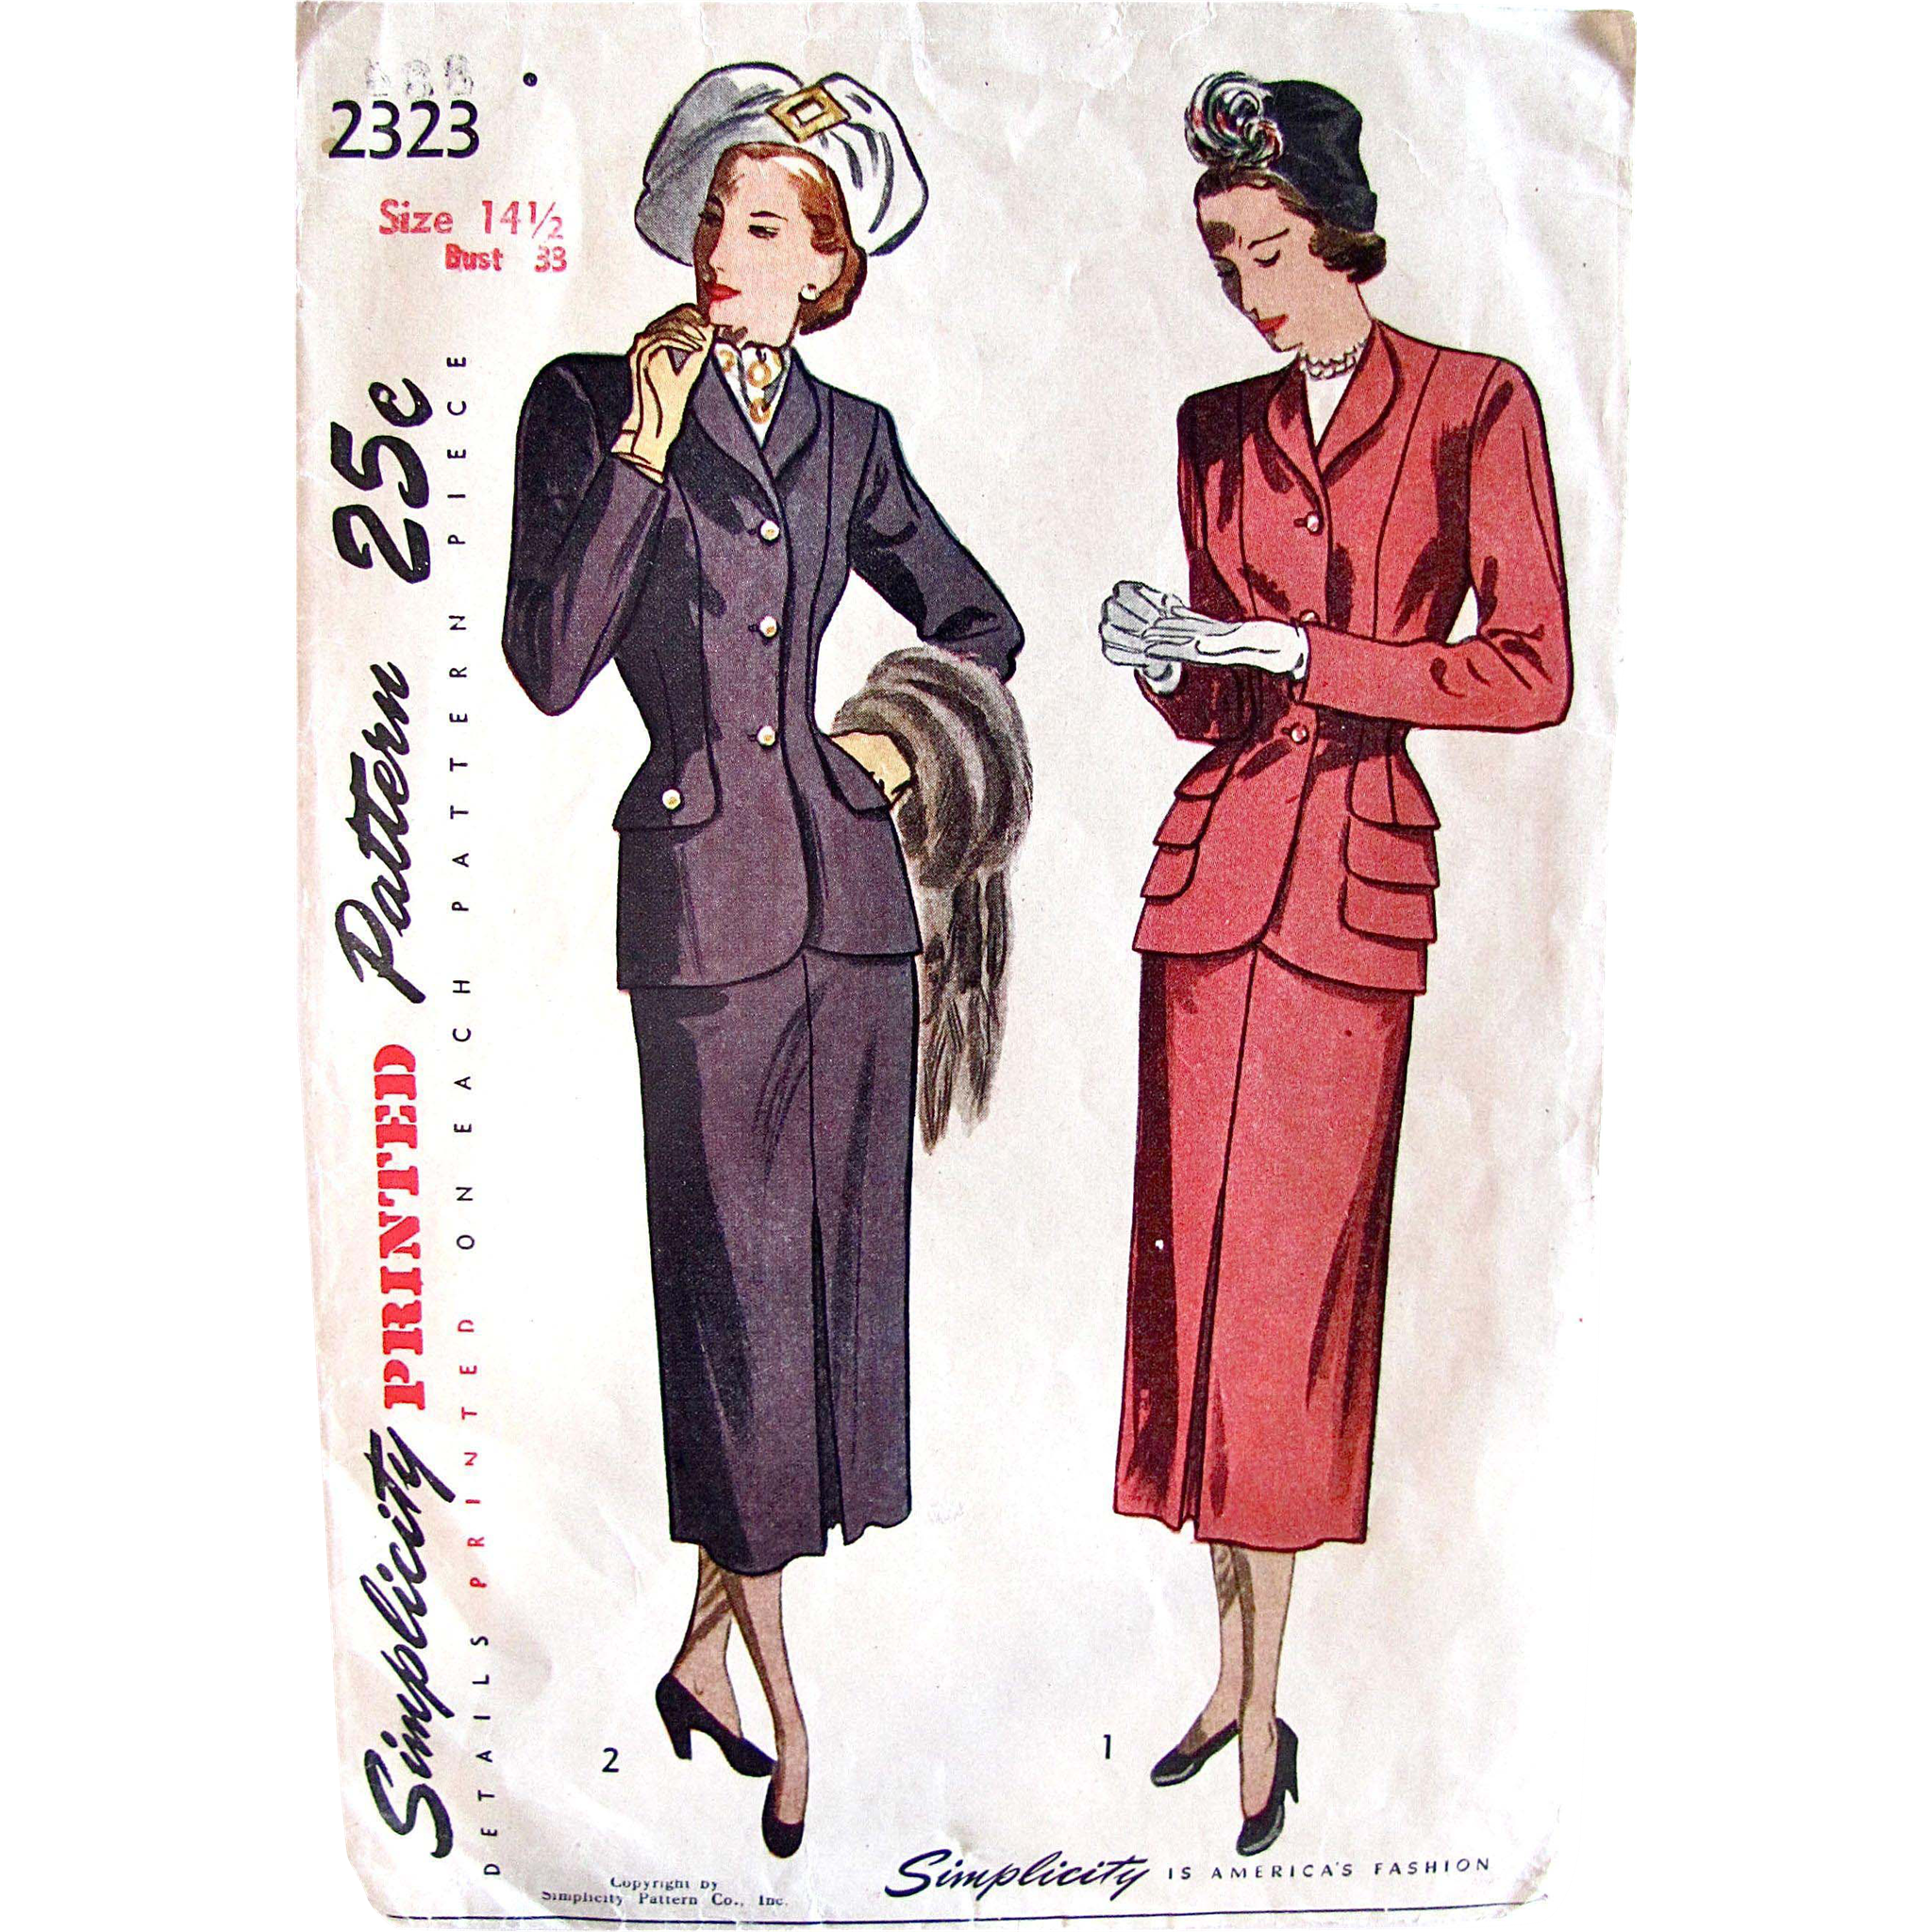 1940s Two-Piece Dress Suit for Misses and Women, Vintage Simplicity Sewing Pattern 2323, Size 141/2, Bust 33 Complete